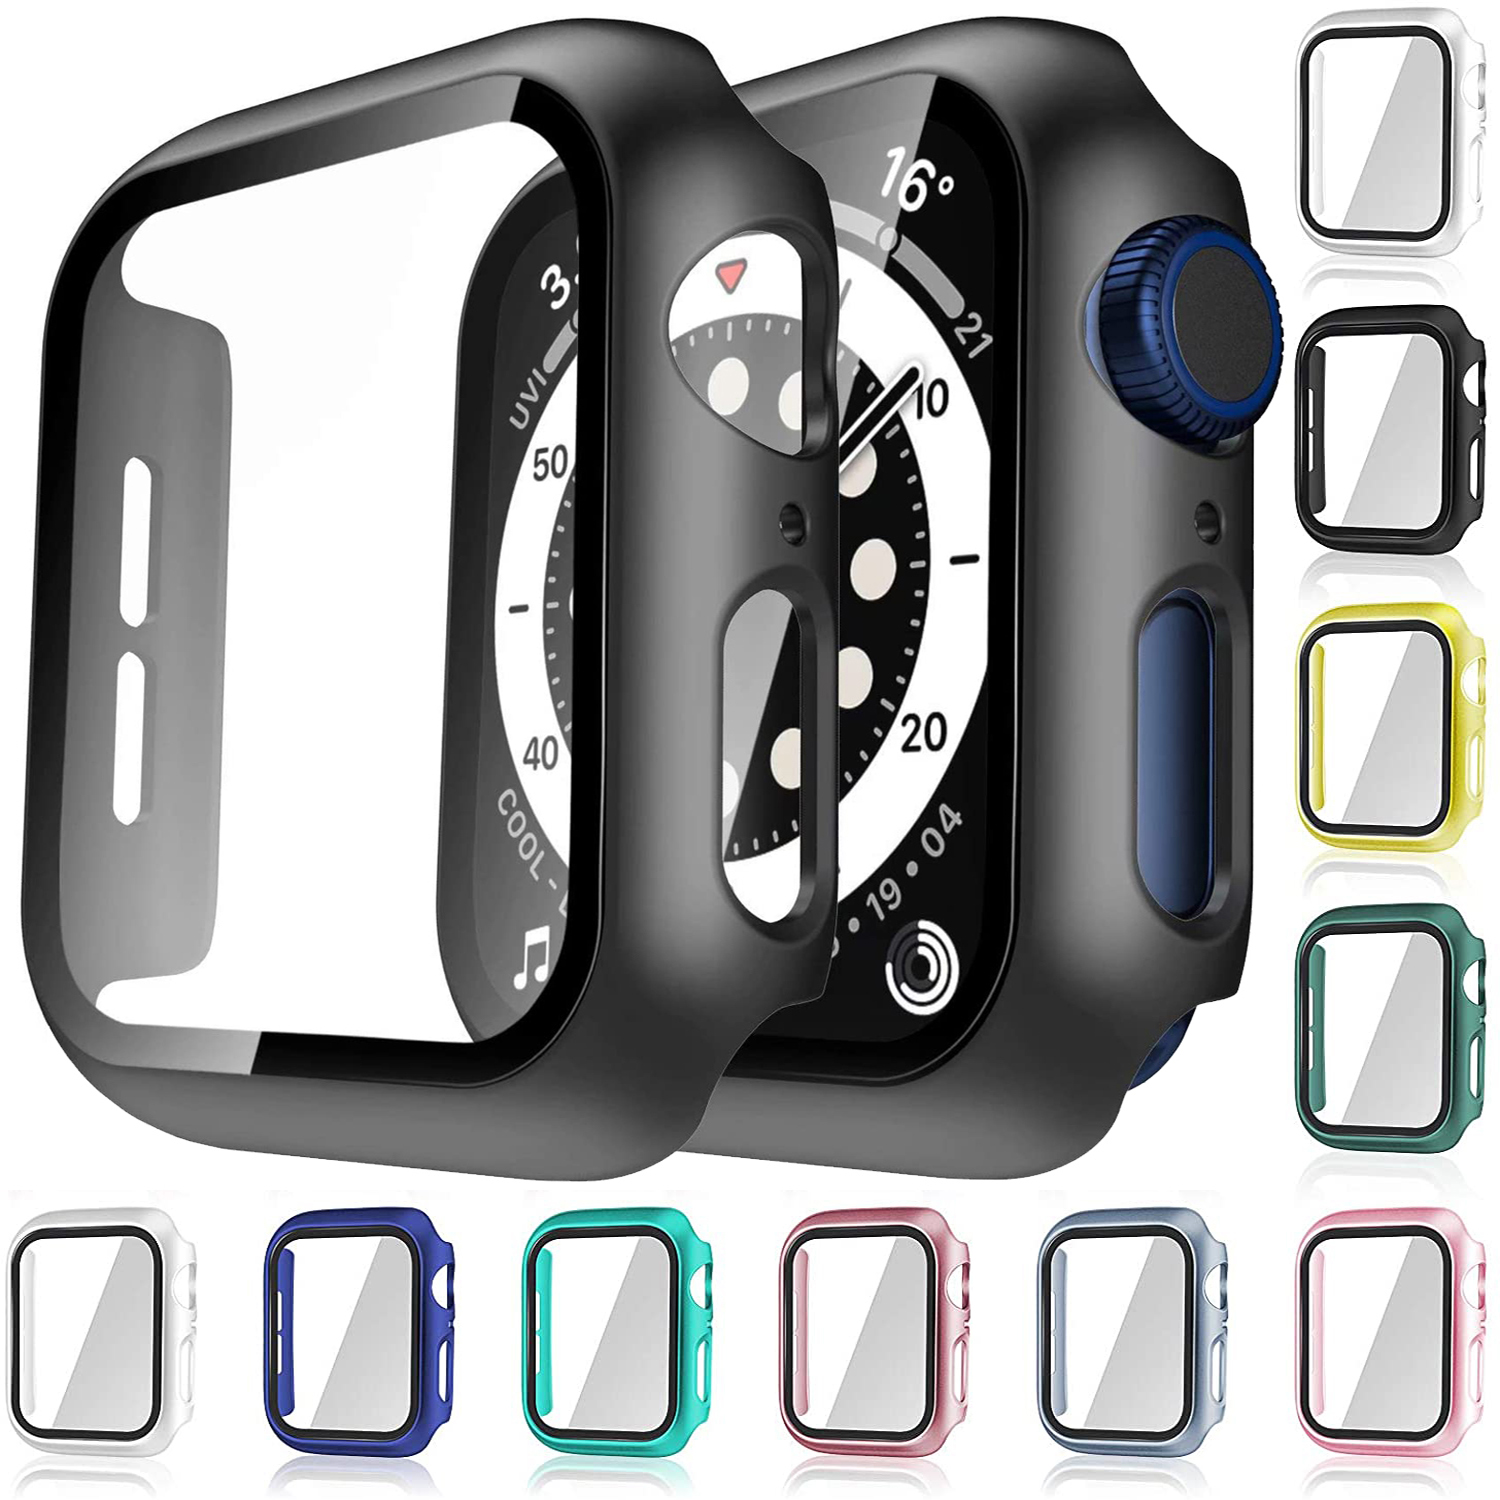 Glass+Case For Apple Watch Serie 6 5 4 3 2 1 SE 44mm 40mm iWatch Case 42mm 38mm Bumper Screen Protector+Cover Watch Accessorie